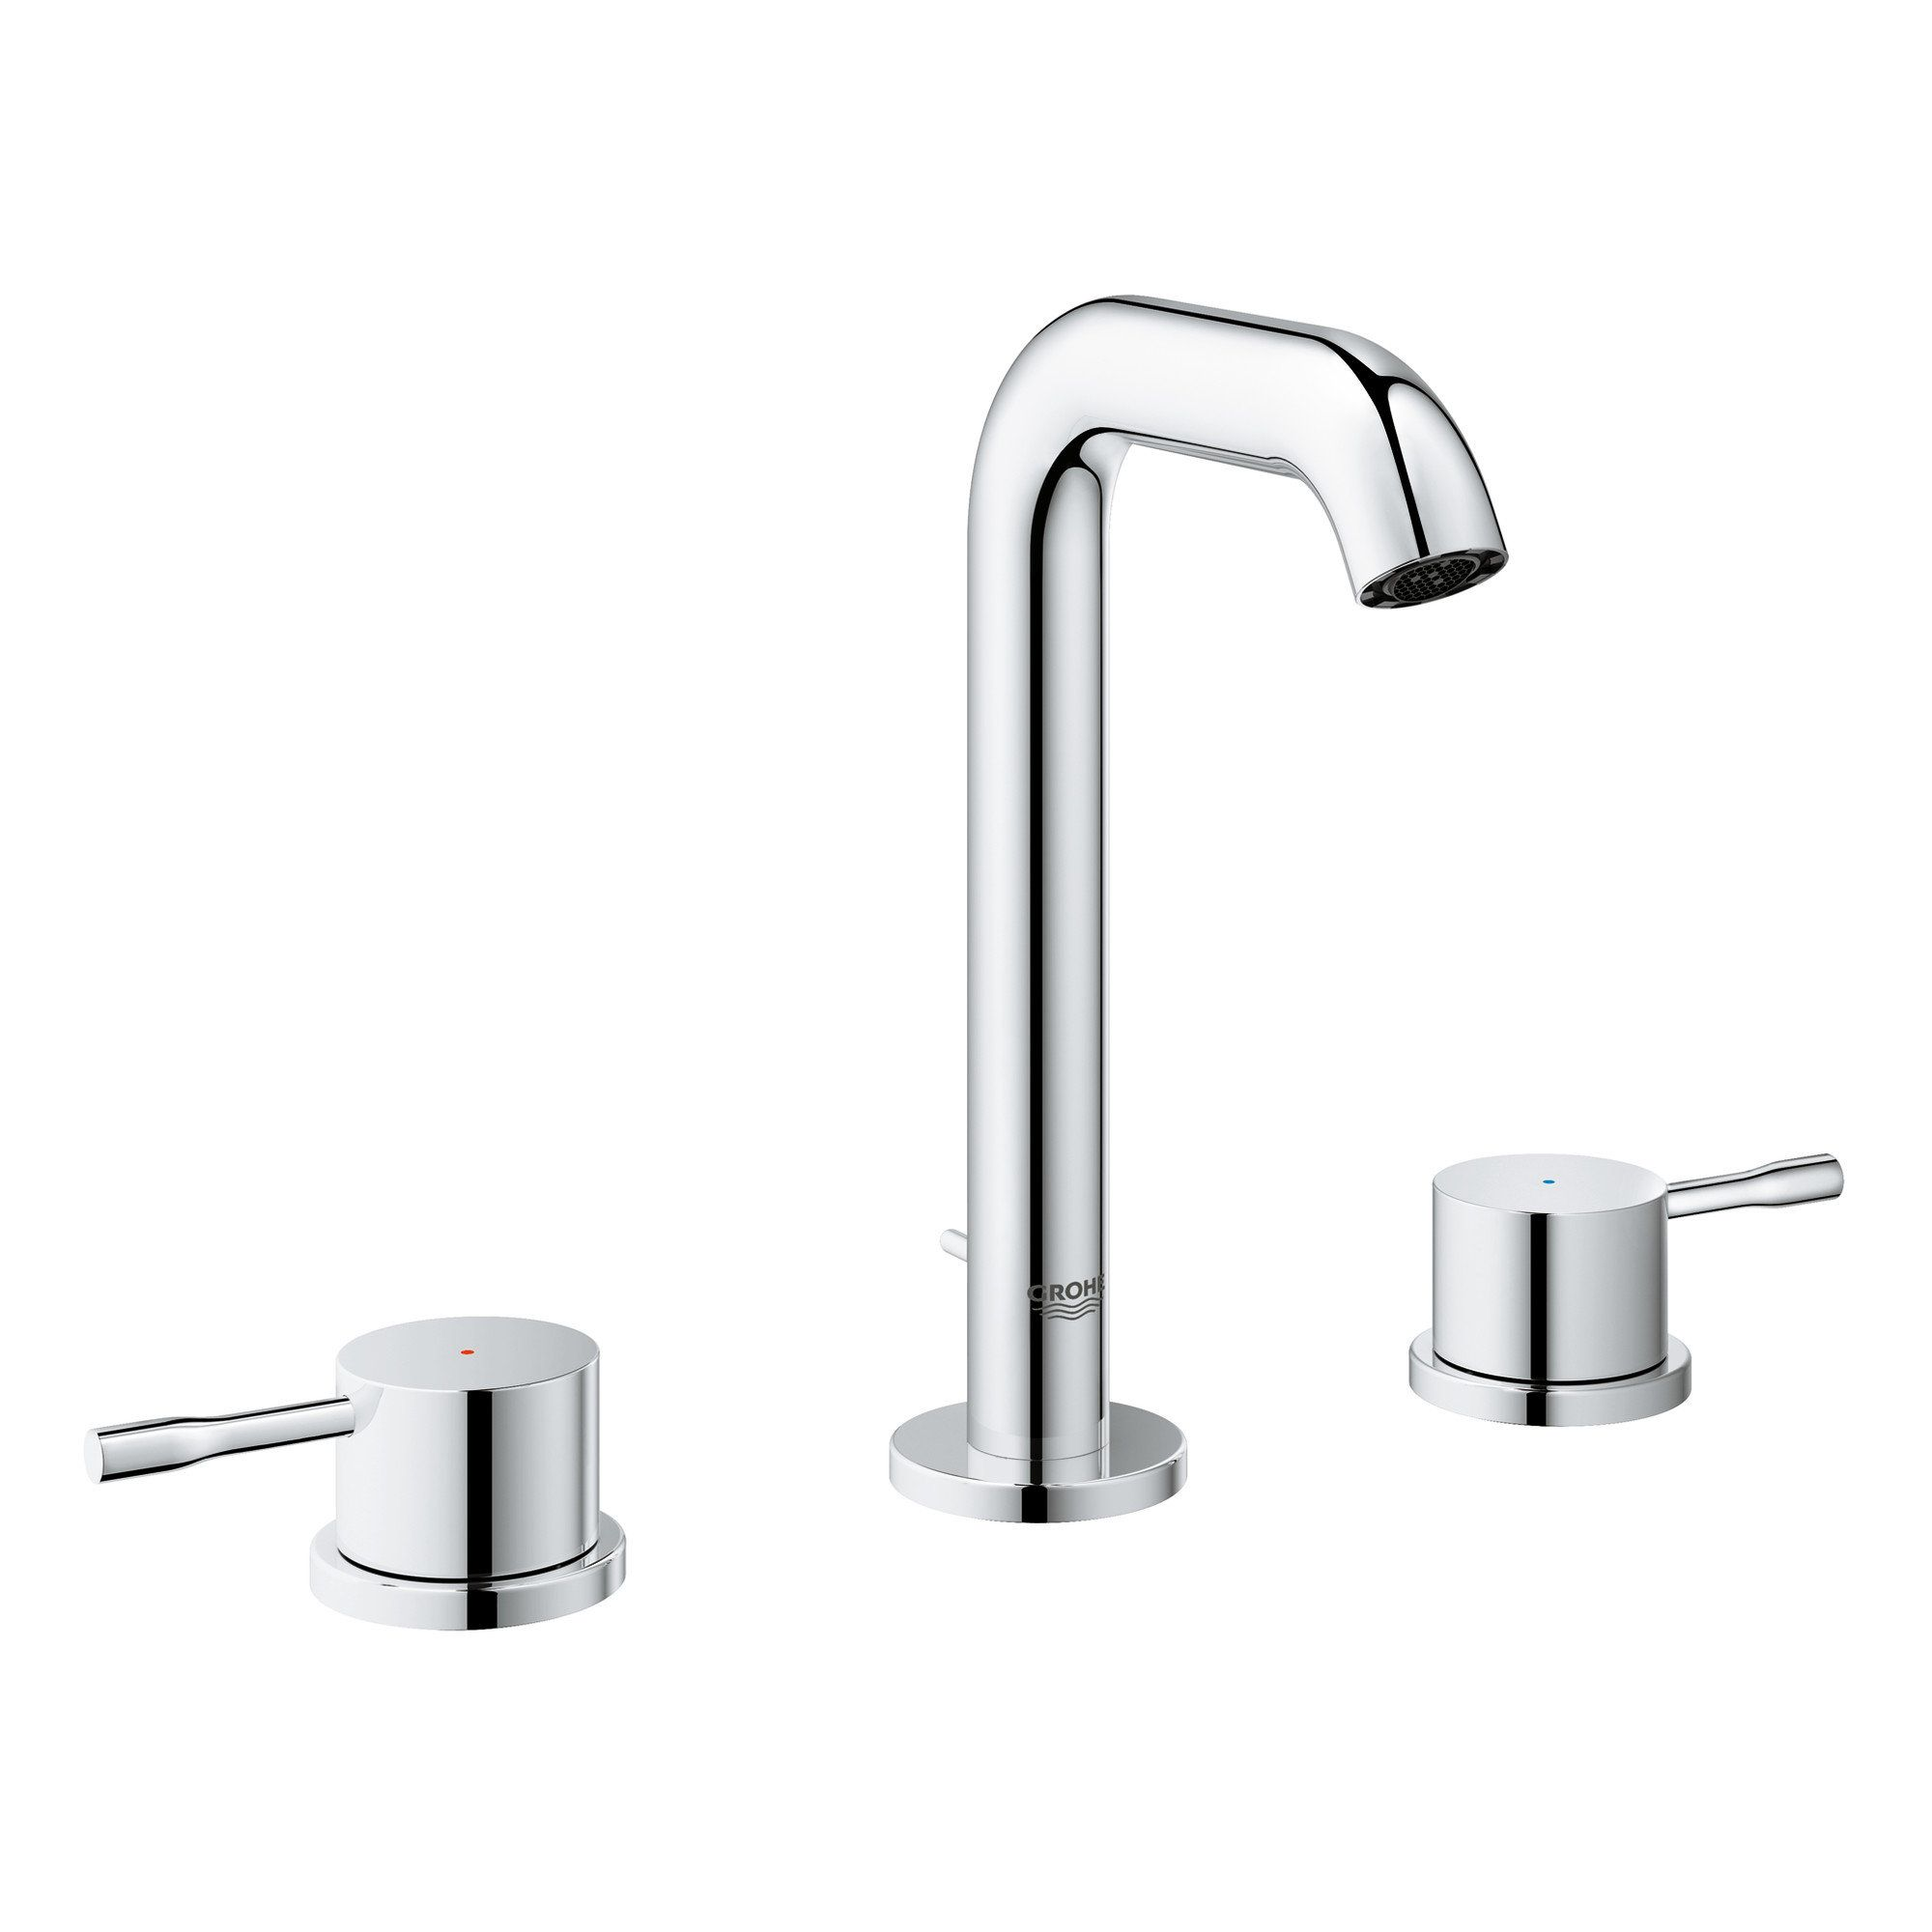 Essence New Double Handle Deck Mounted Tub Faucet Widespread